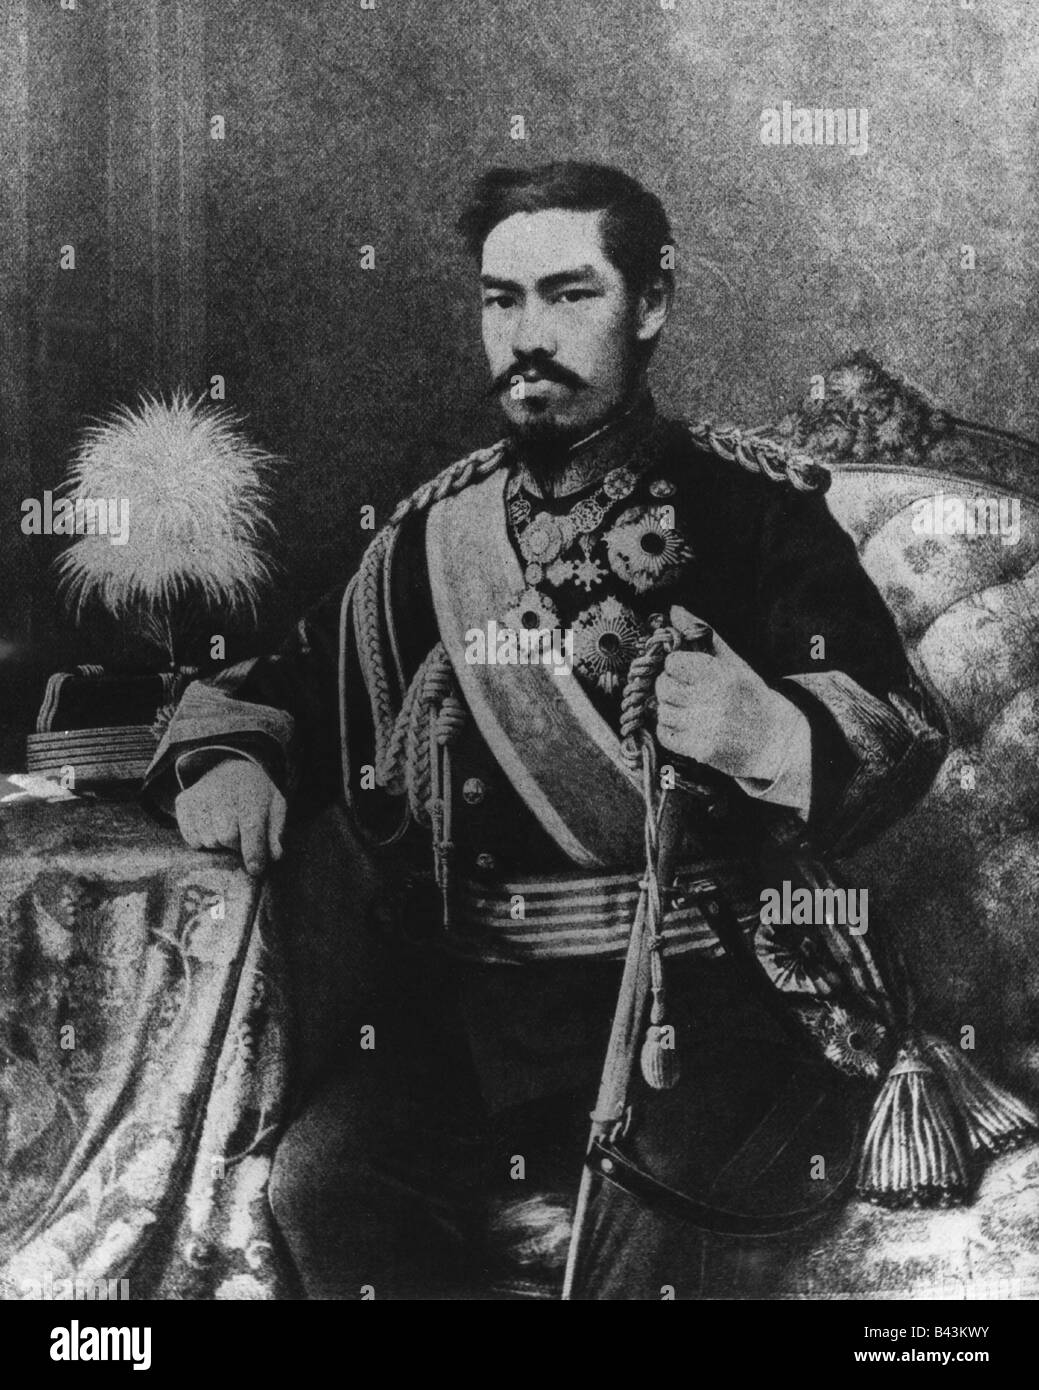 the role of the emperor in meiji japan The meiji restoration, or the meiji revolution, had and has a controversial   their reactions were varied and the importance of and reasons for the  the  genro, and the right of the military to appeal directly to the emperor.